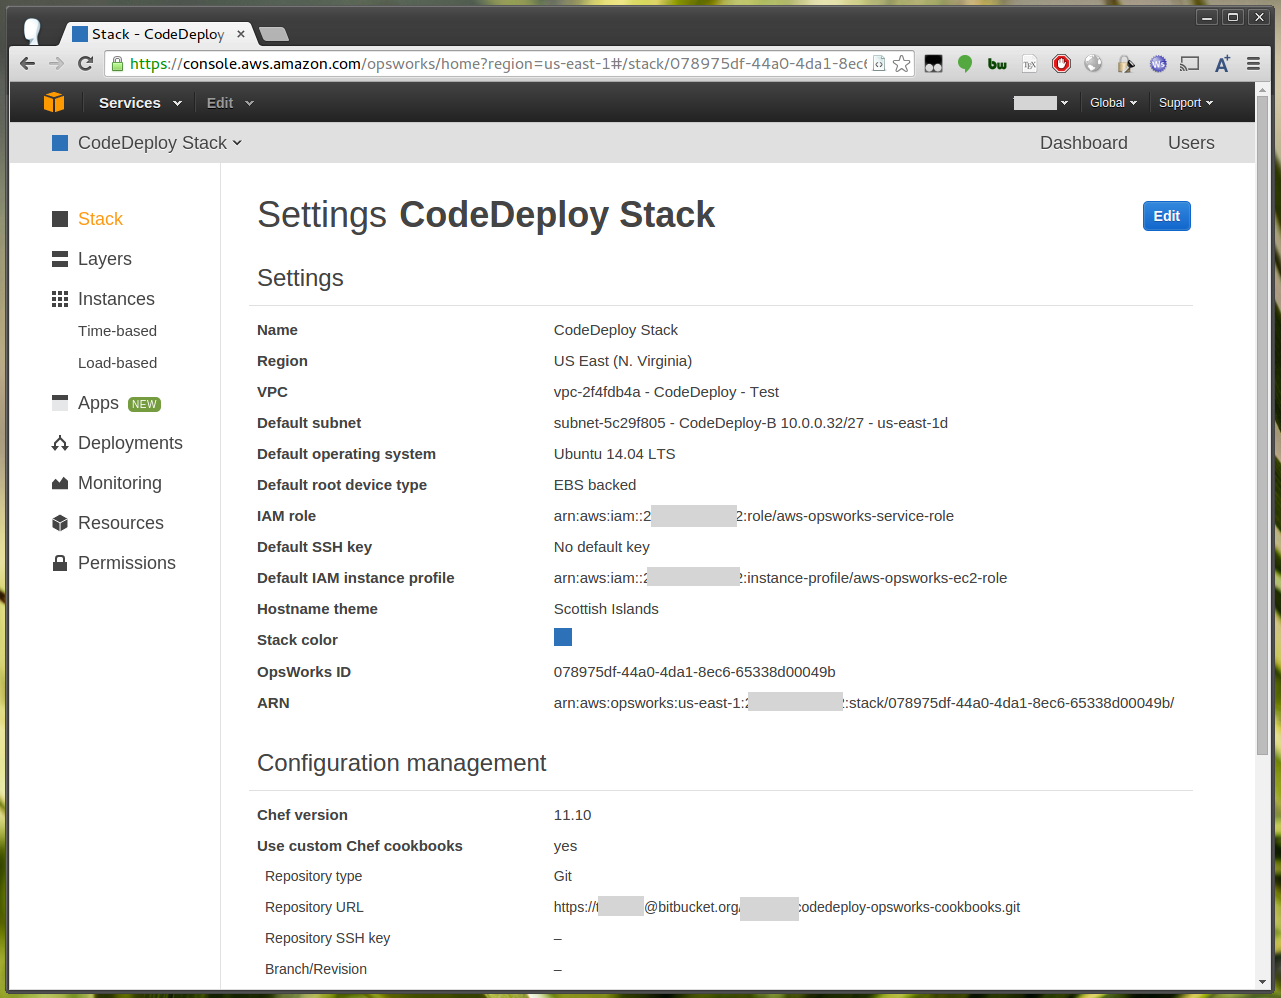 Part 1: Integrating OpsWorks and CodeDeploy - :HIPSTER_DEV_BLOG